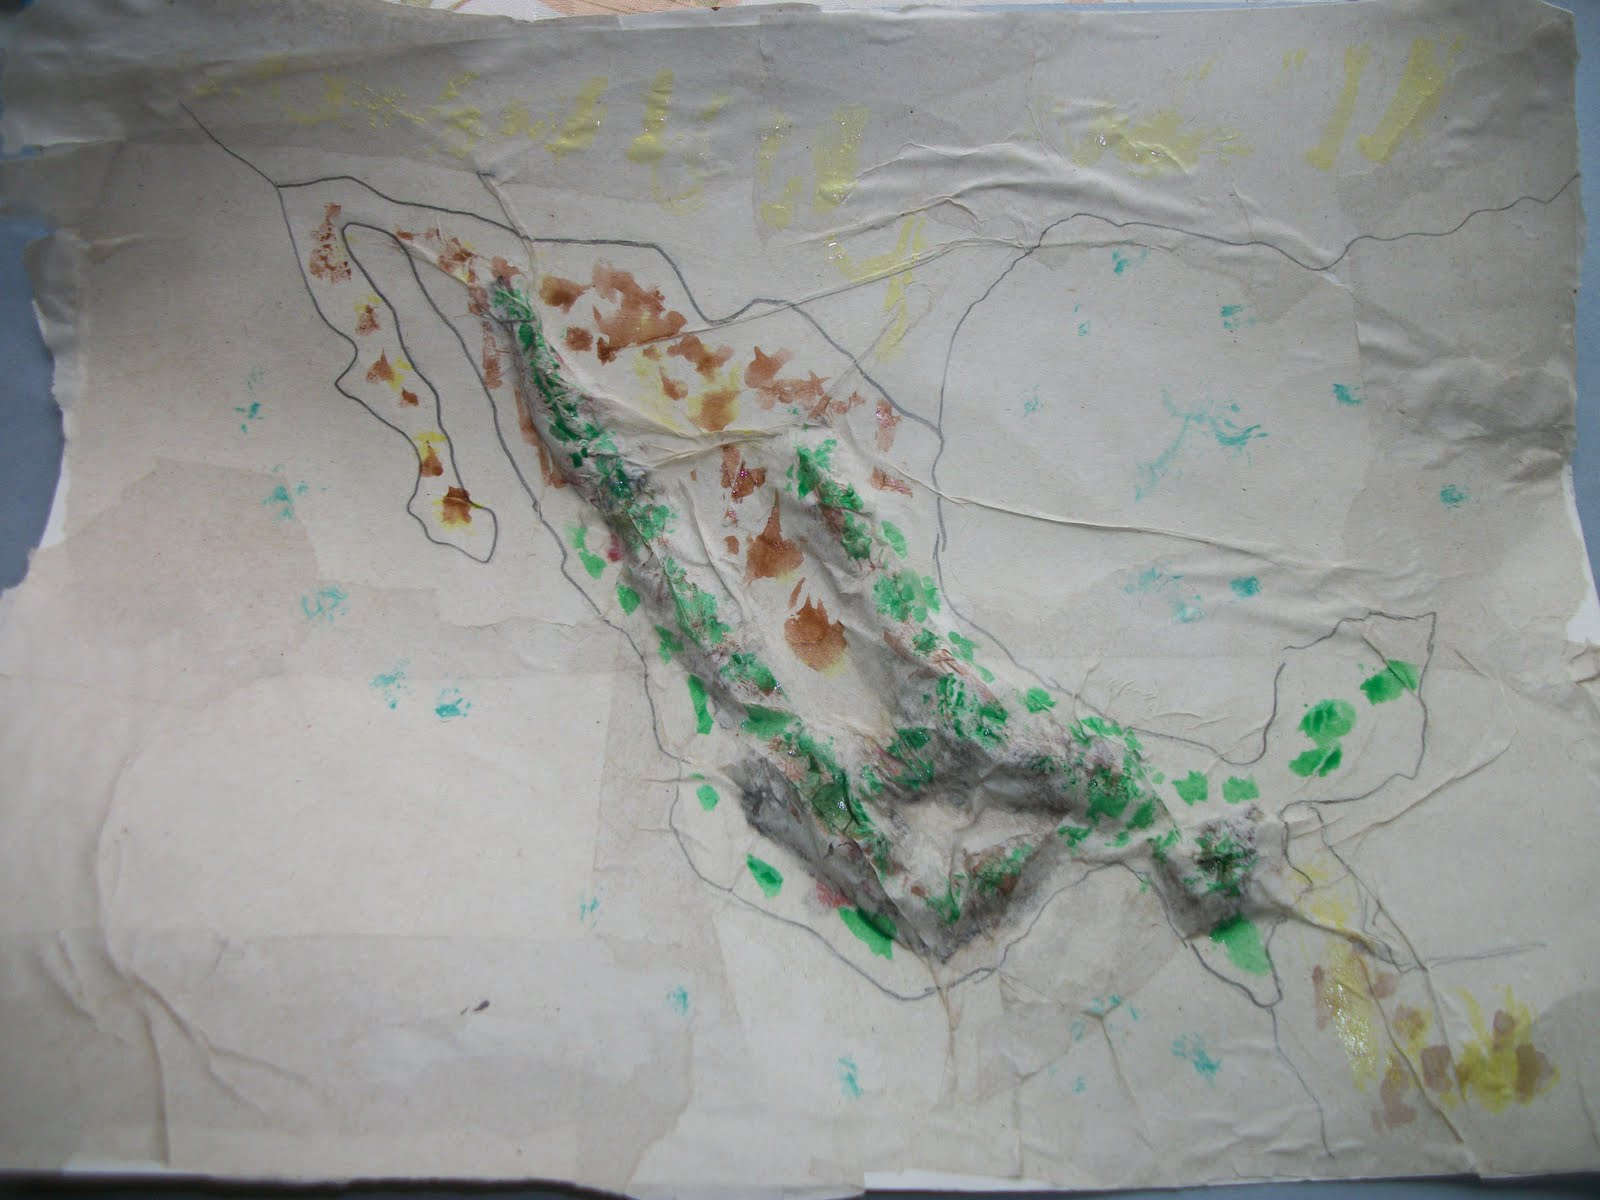 then the kids began filling in the color using watercolor paints this was my favorite step since luke 4 1 2 reese 6 and brianna all could participate